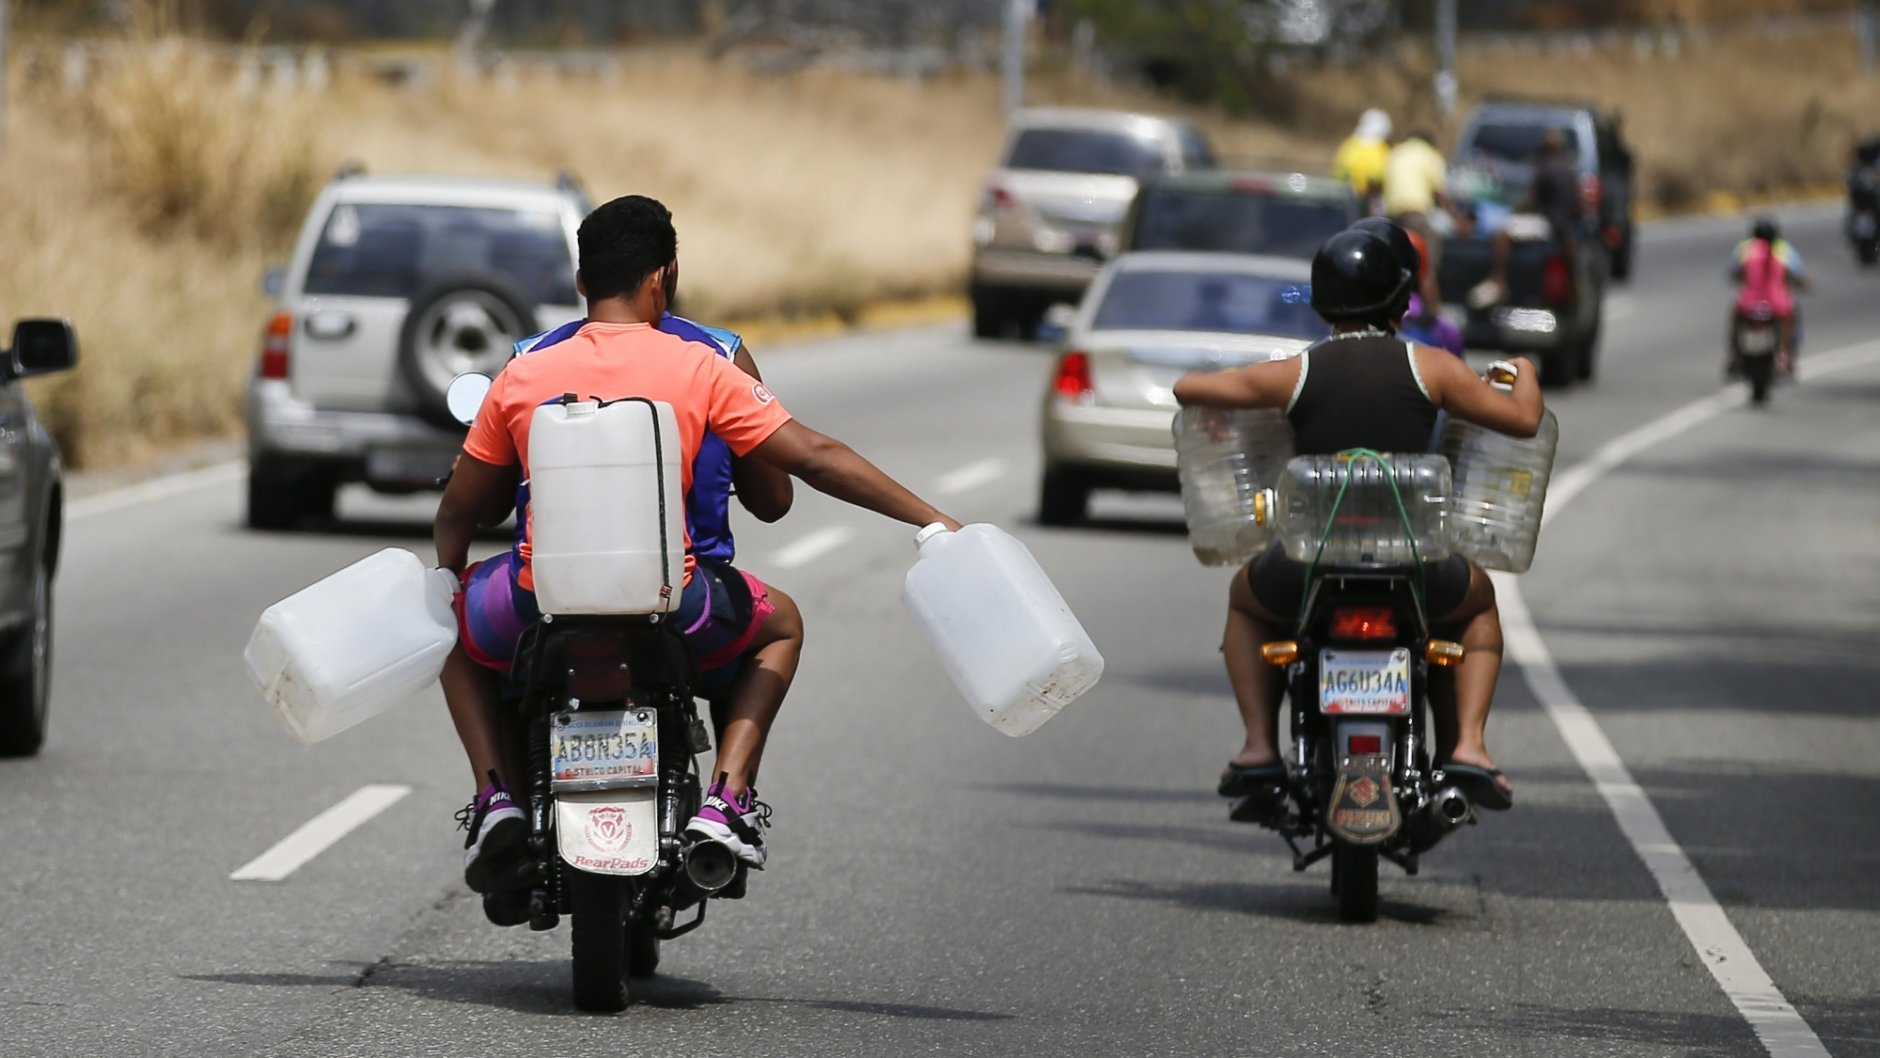 Motorcyclists carry empty containers to collect water, during rolling blackouts affecting the water pumps in people's homes and apartment buildings, in Caracas, Venezuela, Sunday, March 10, 2019.  Venezuelans reached new levels of desperation Sunday as the country's worst blackouts took their toll, gathering in larger numbers than usual to collect water and scrounging for scarce cash to pay for food in the few shops that were open. (AP Photo/Eduardo Verdugo)